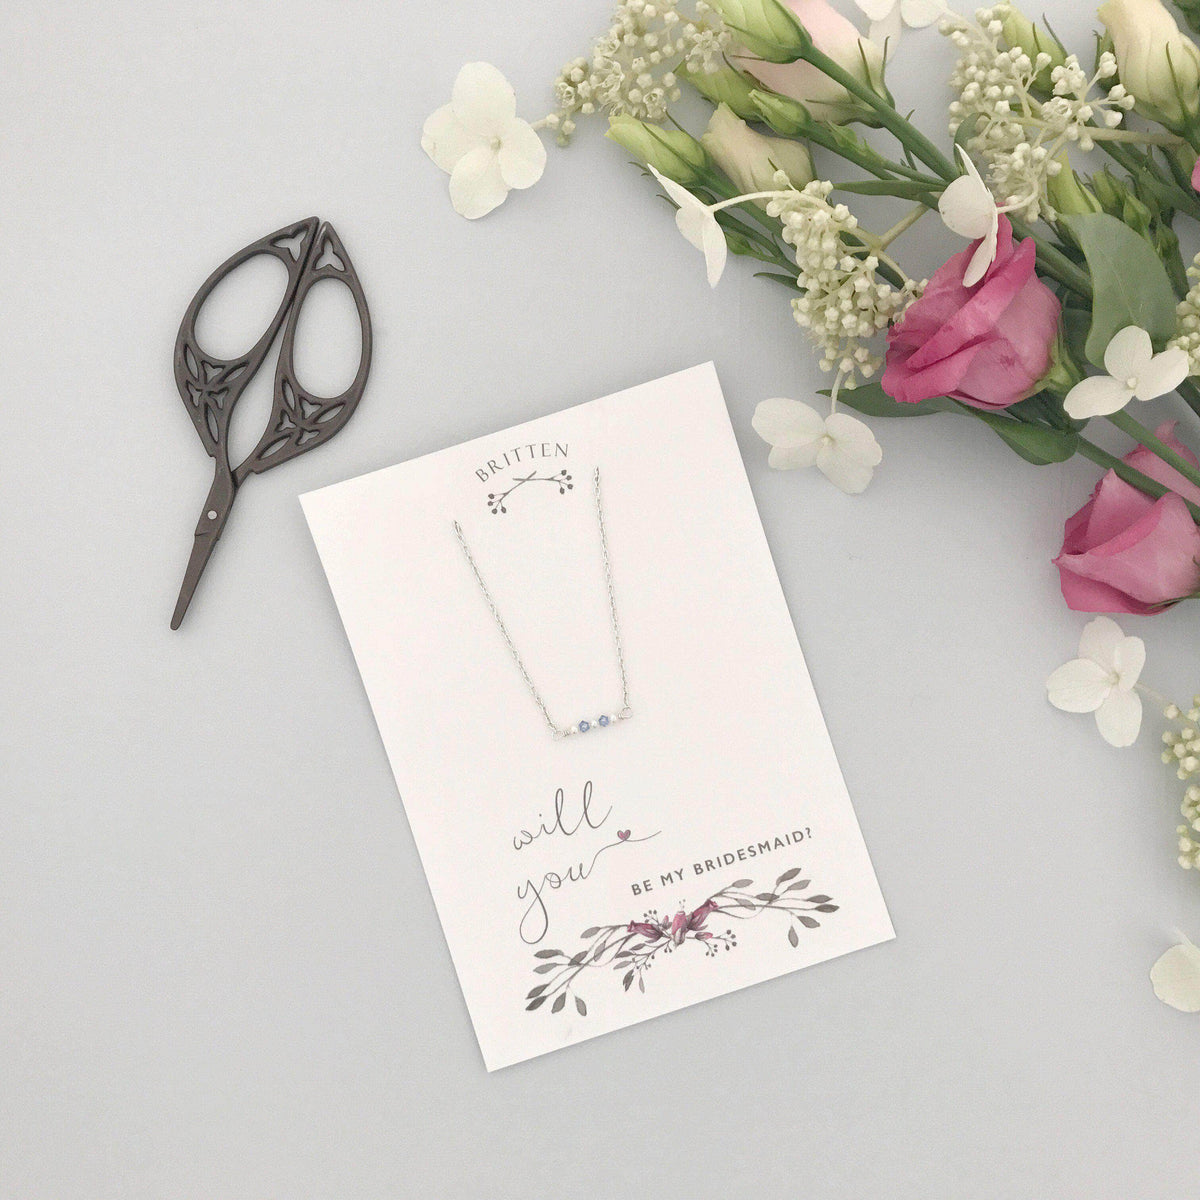 Bridesmaid Gift Silver Bridesmaid 'thank you' gift necklace - 'Mollie' in silver